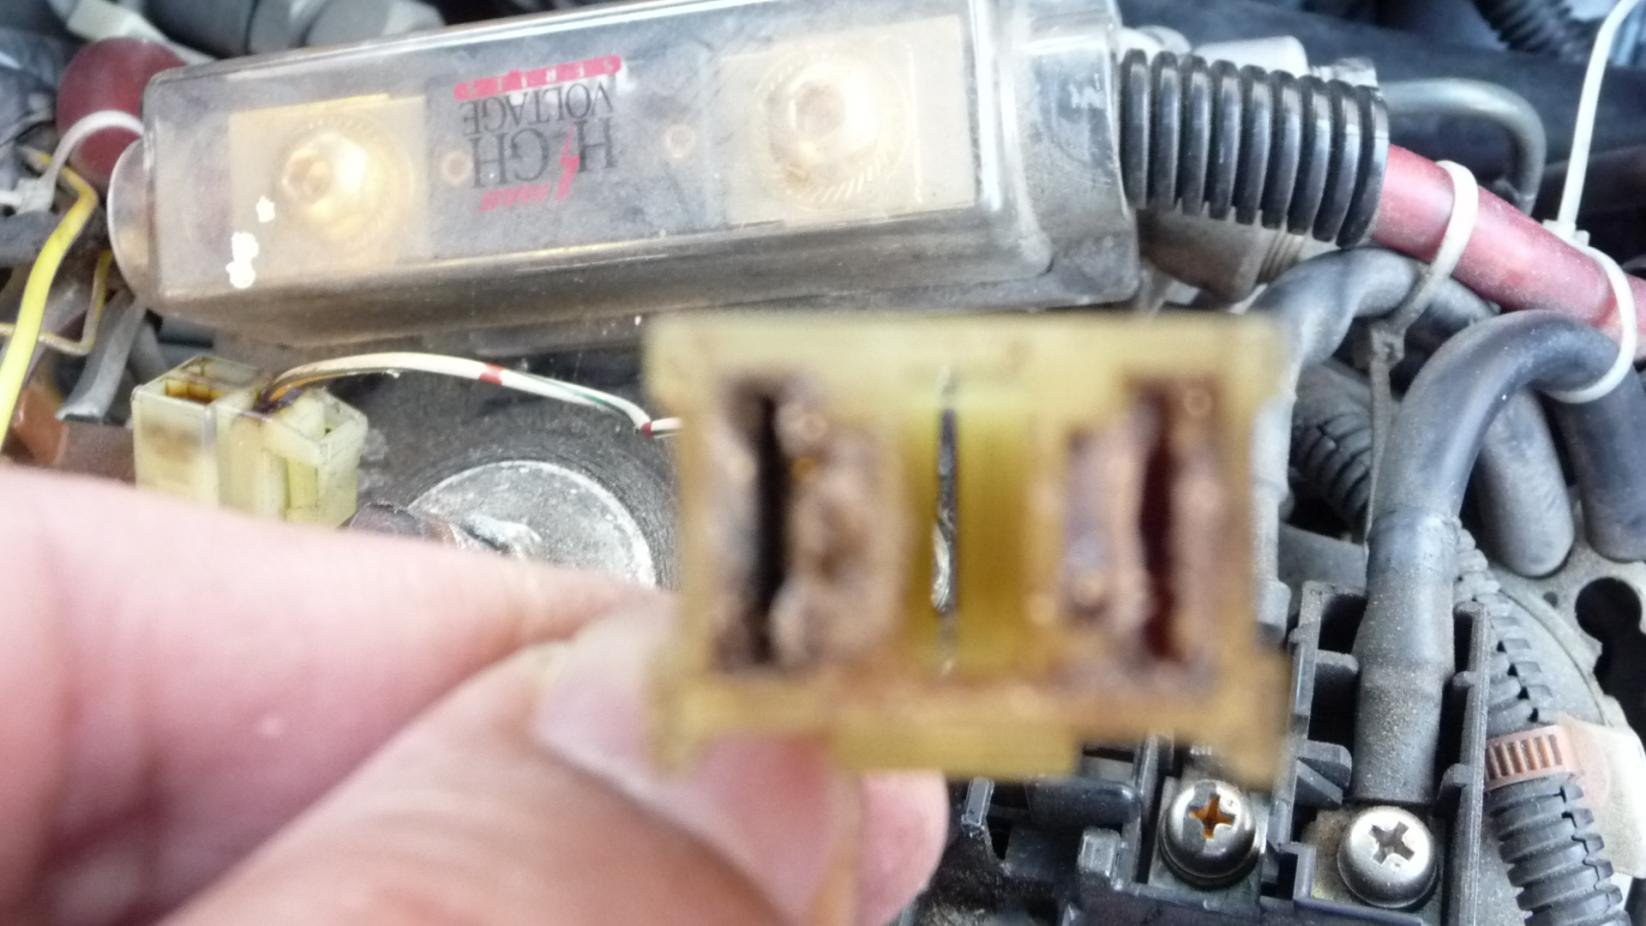 hight resolution of 91 integra fuse box under the hood acura forum acura forums acura integra 91 fuse box location 91 integra fuse box